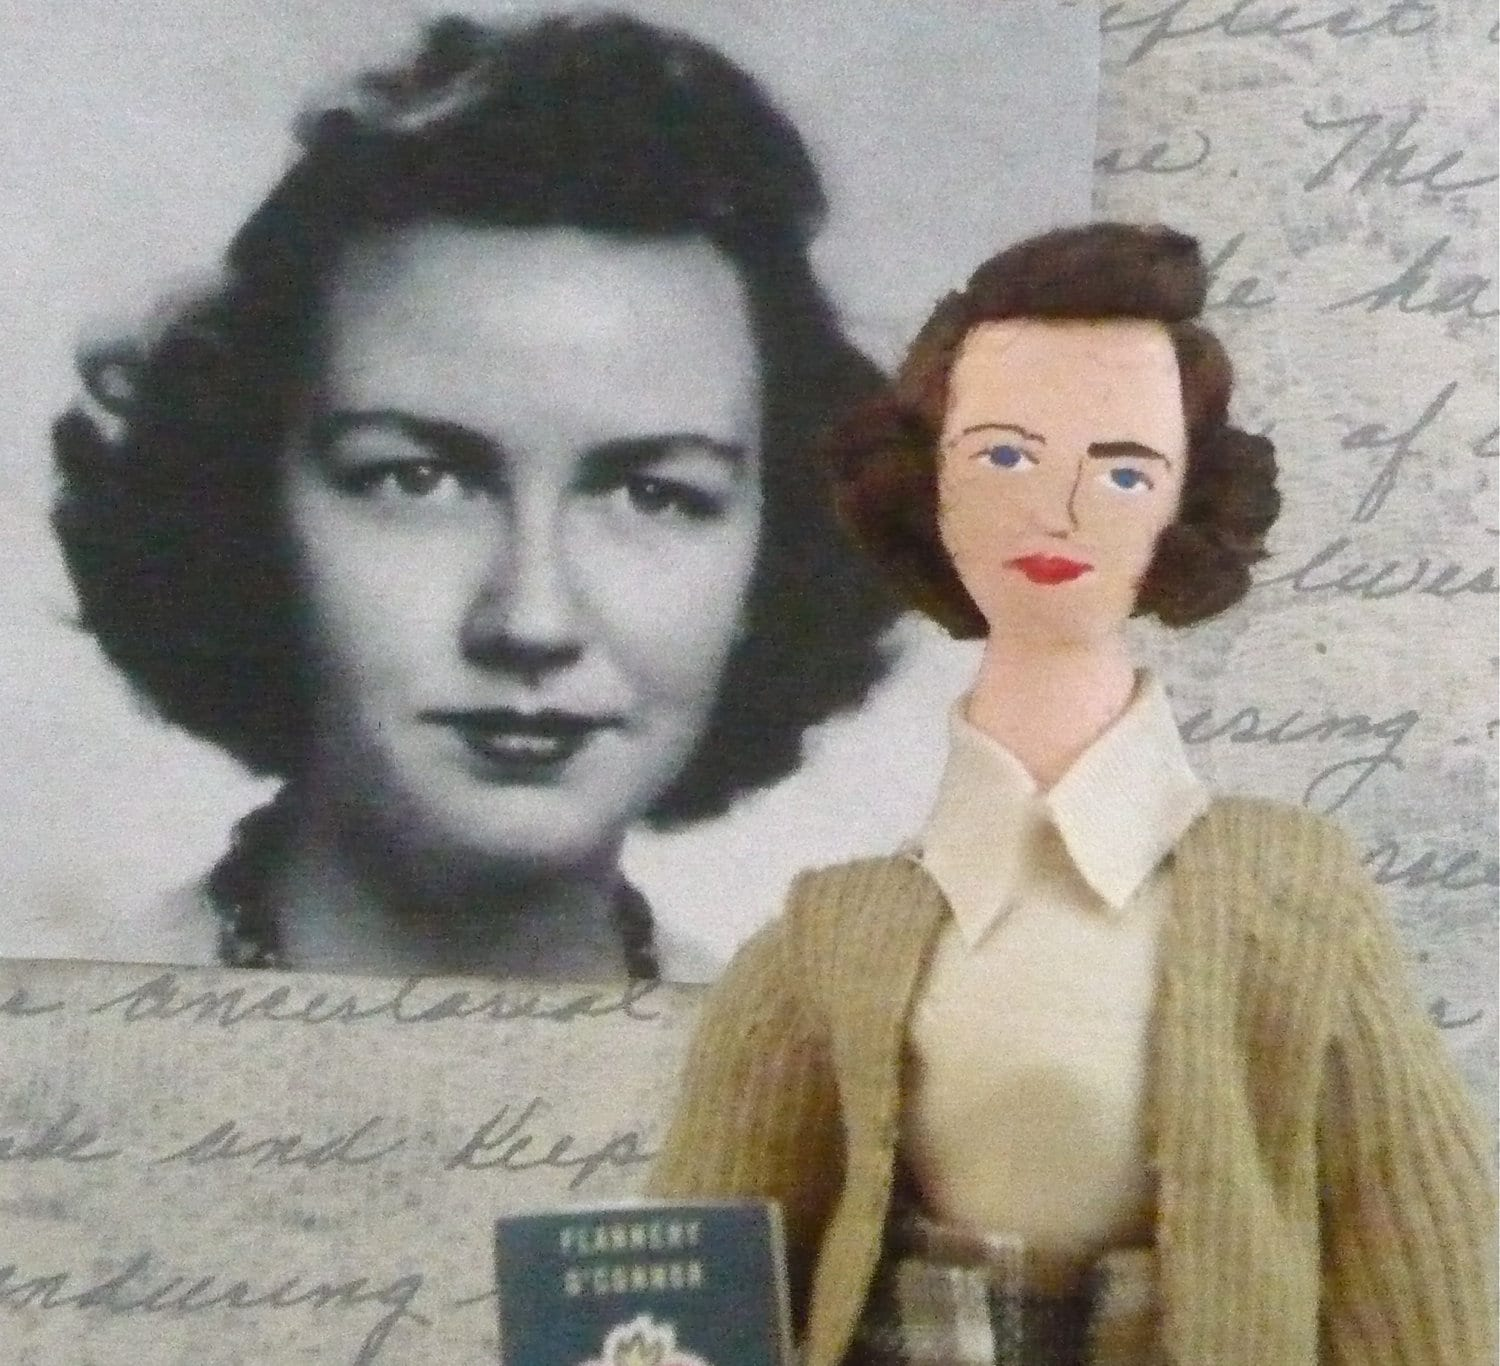 Flannery O' Conner Miniature Literary Collectible Writer Doll